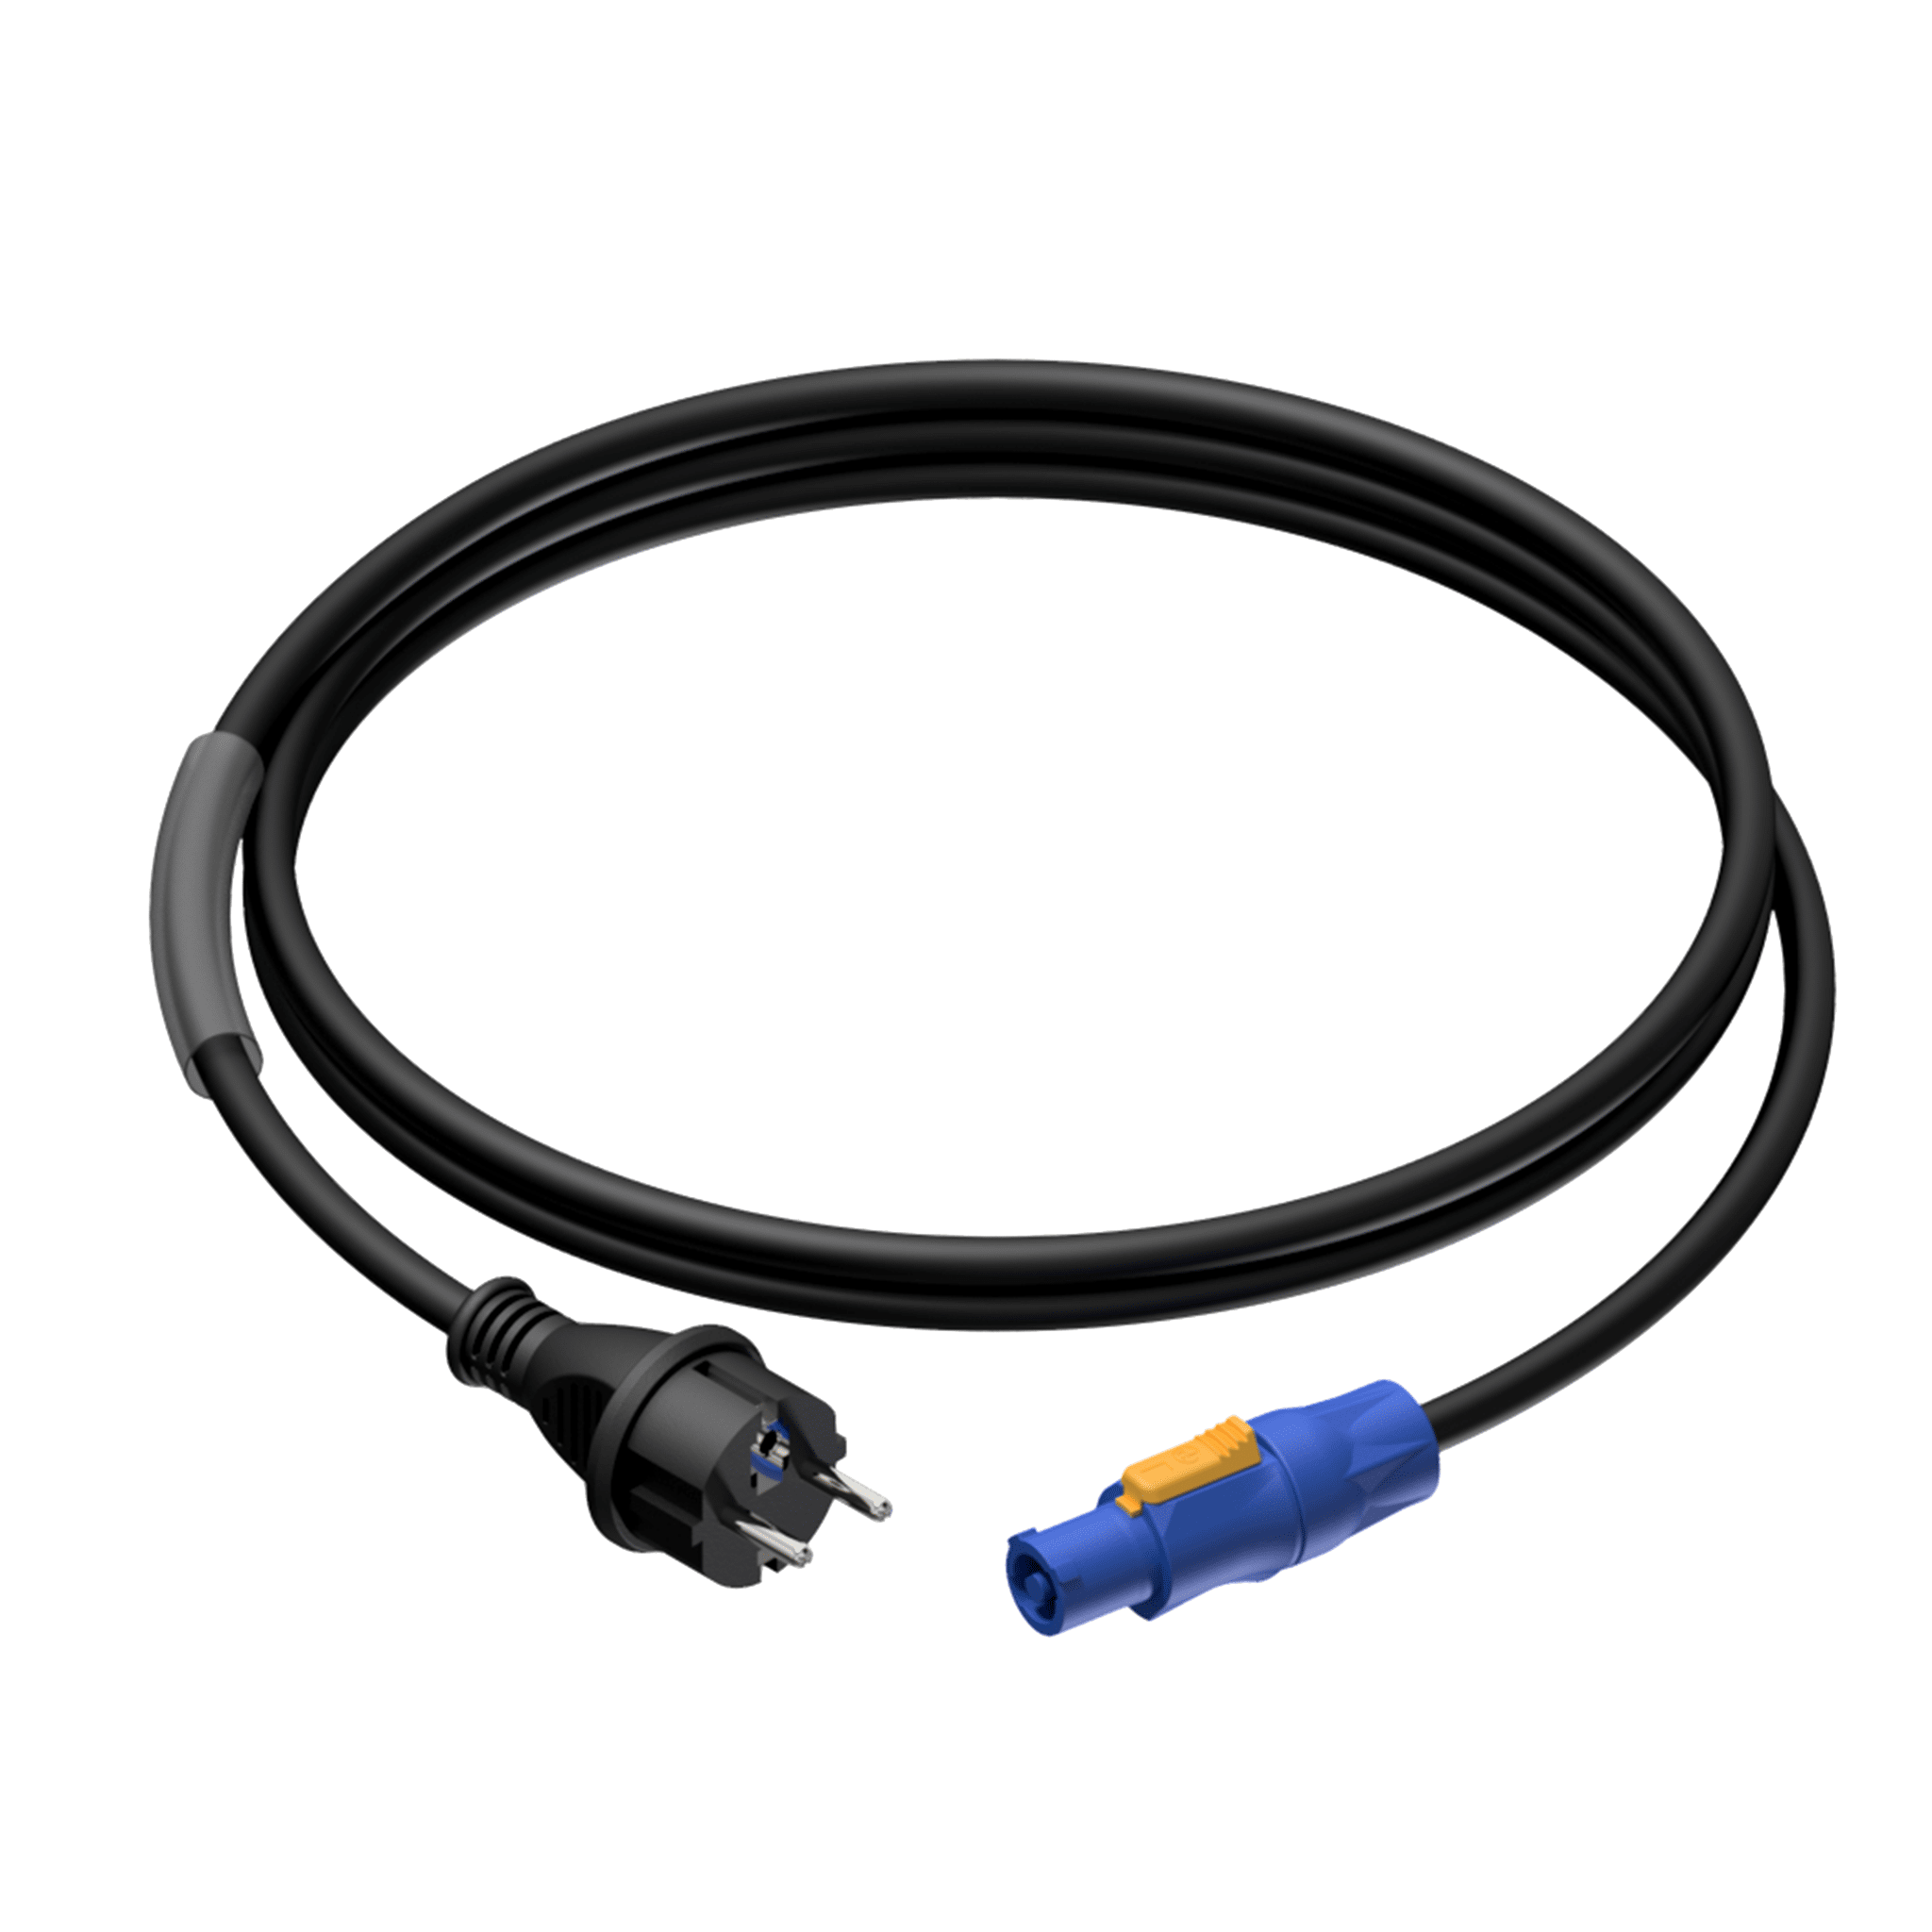 CAB442 - Power cable - schuko male - powerCON power-out - 3 x 2.5 mm²